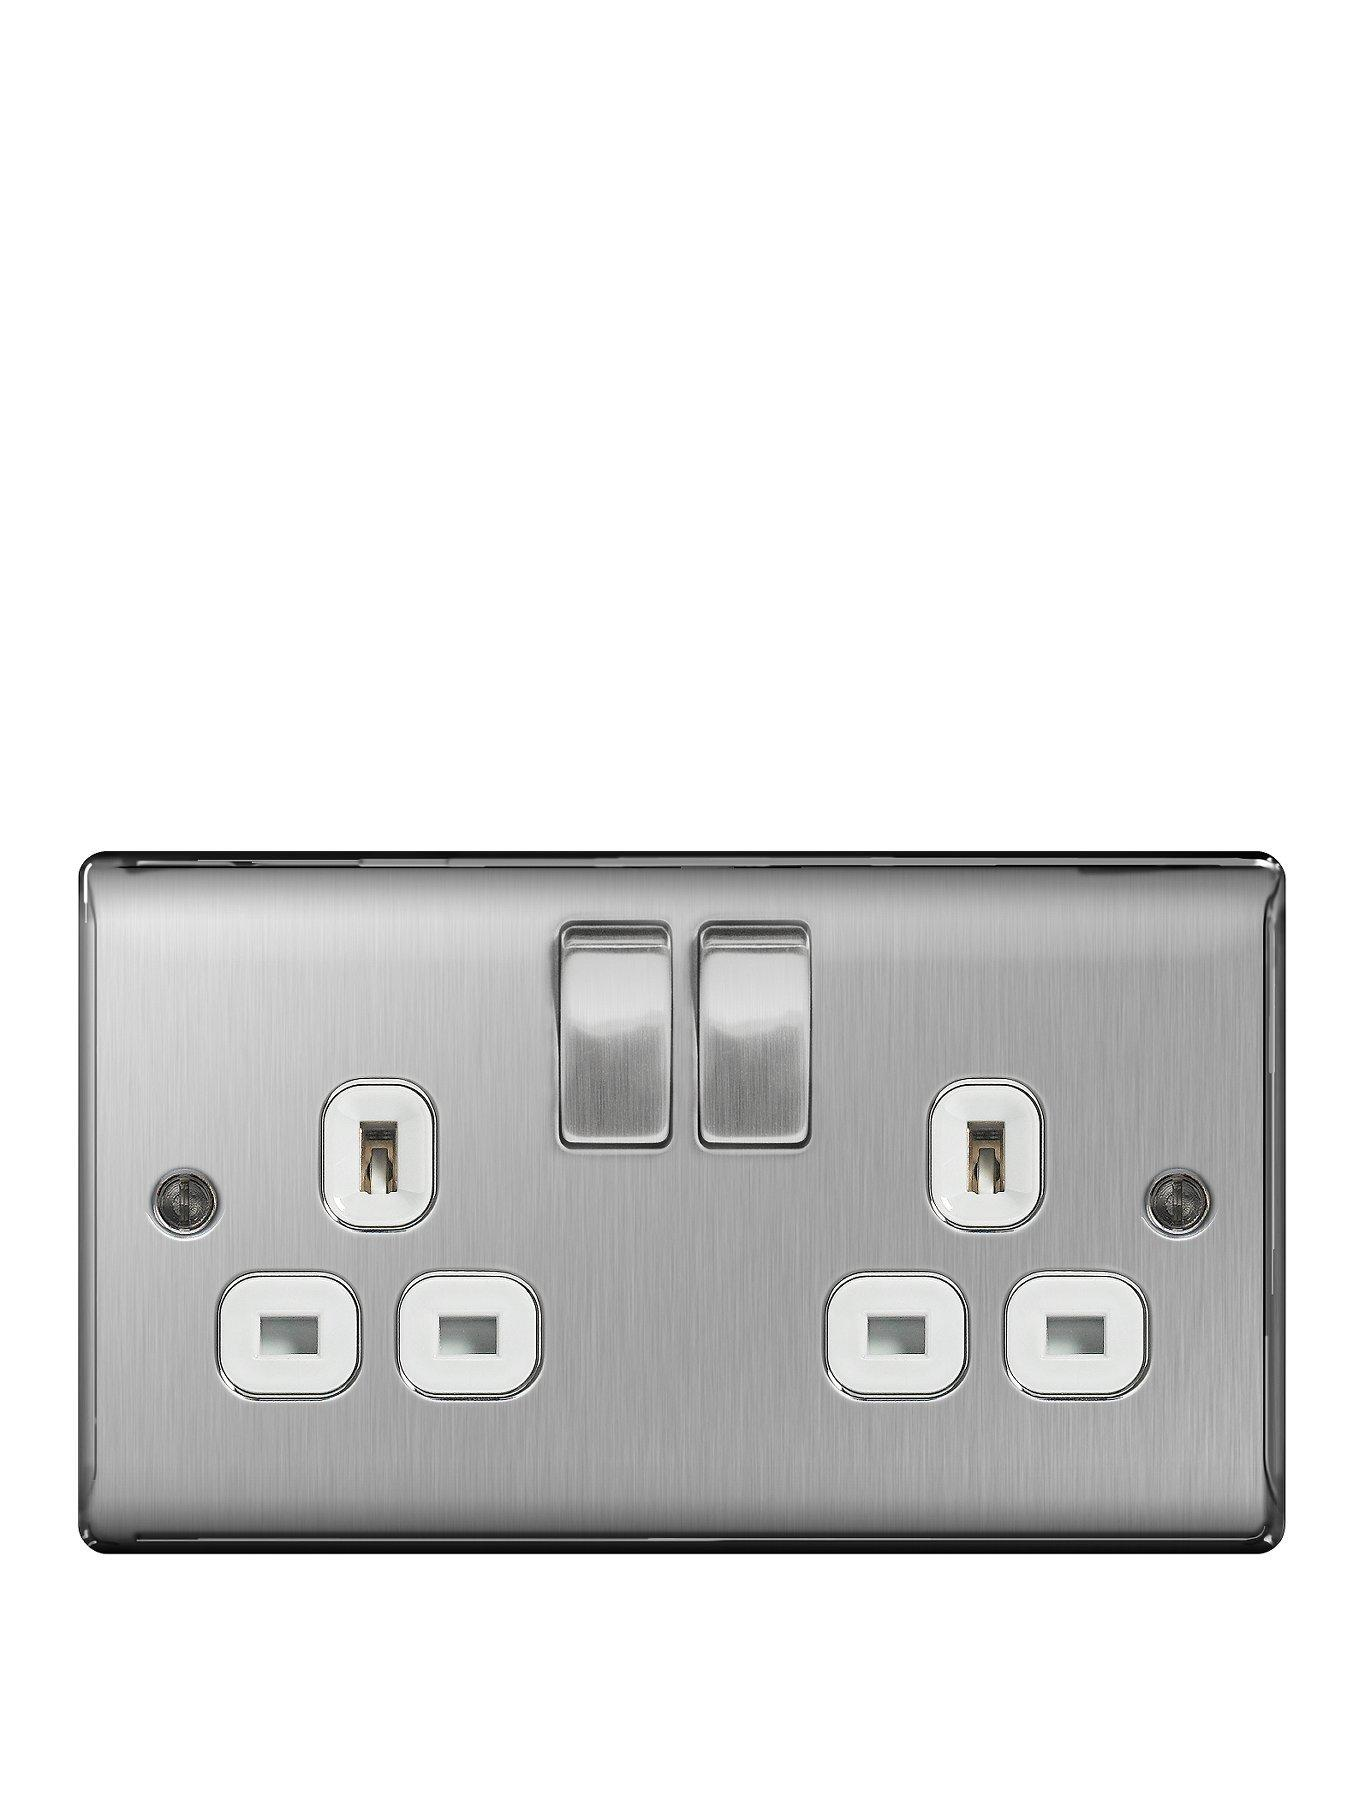 Compare cheap offers & prices of British General Brushed Steel 13A 2G Double Switched Socket manufactured by British General